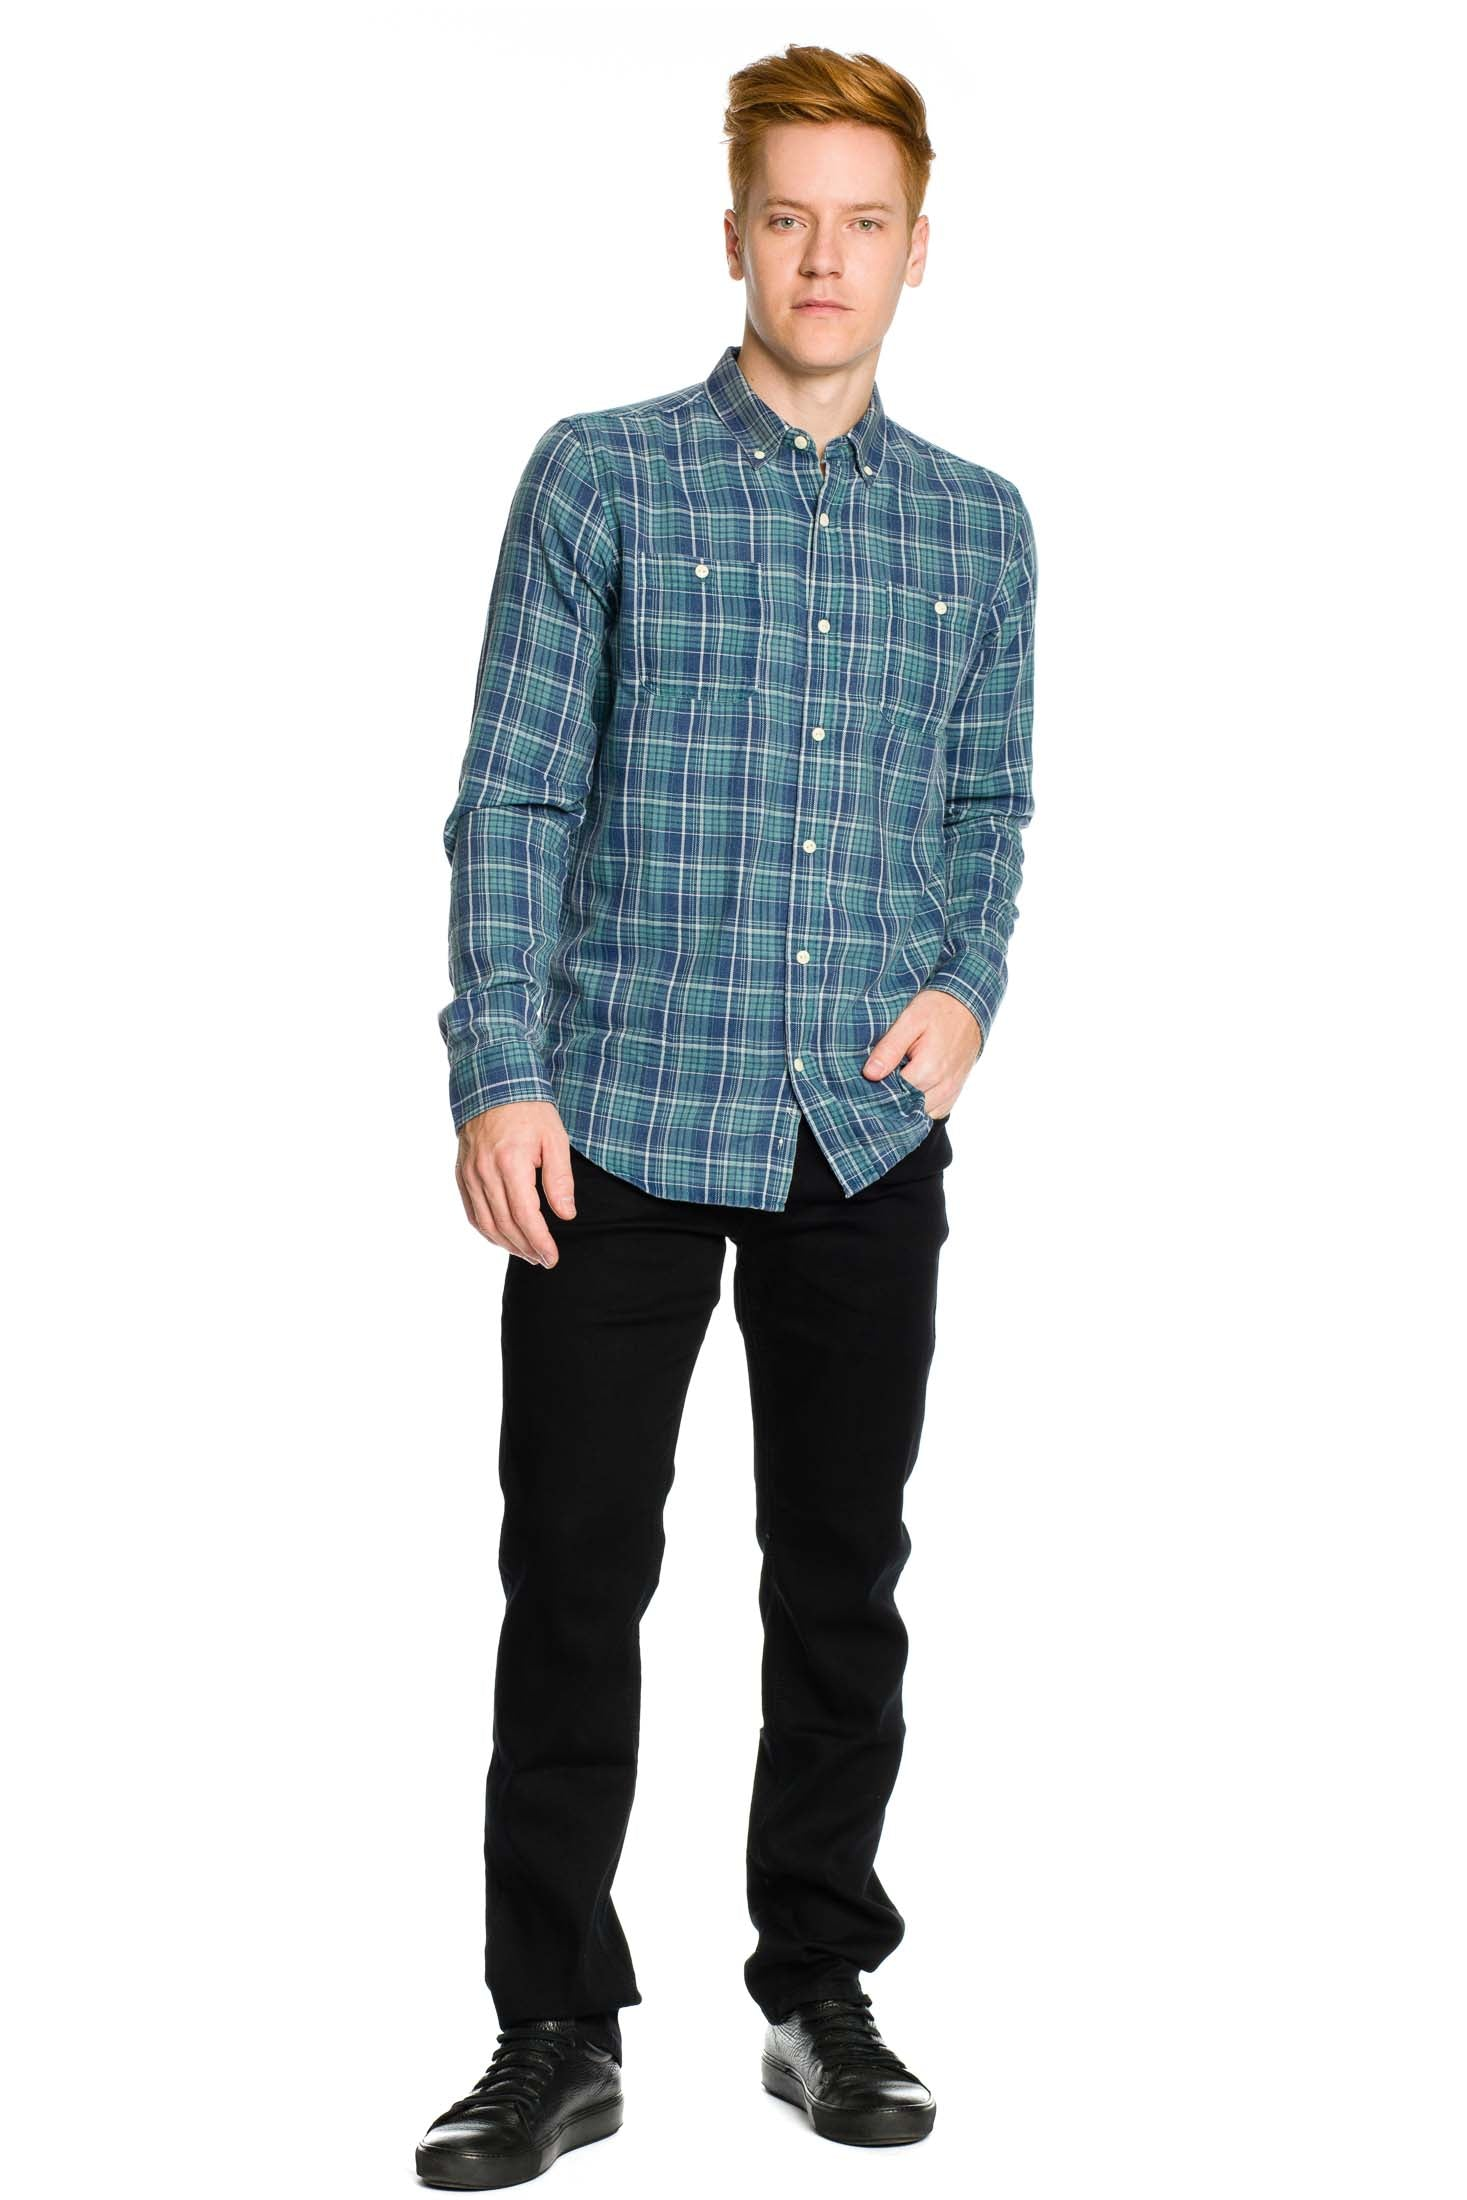 Greenwich Shirt - Dusty Jade - Ezekiel Clothing